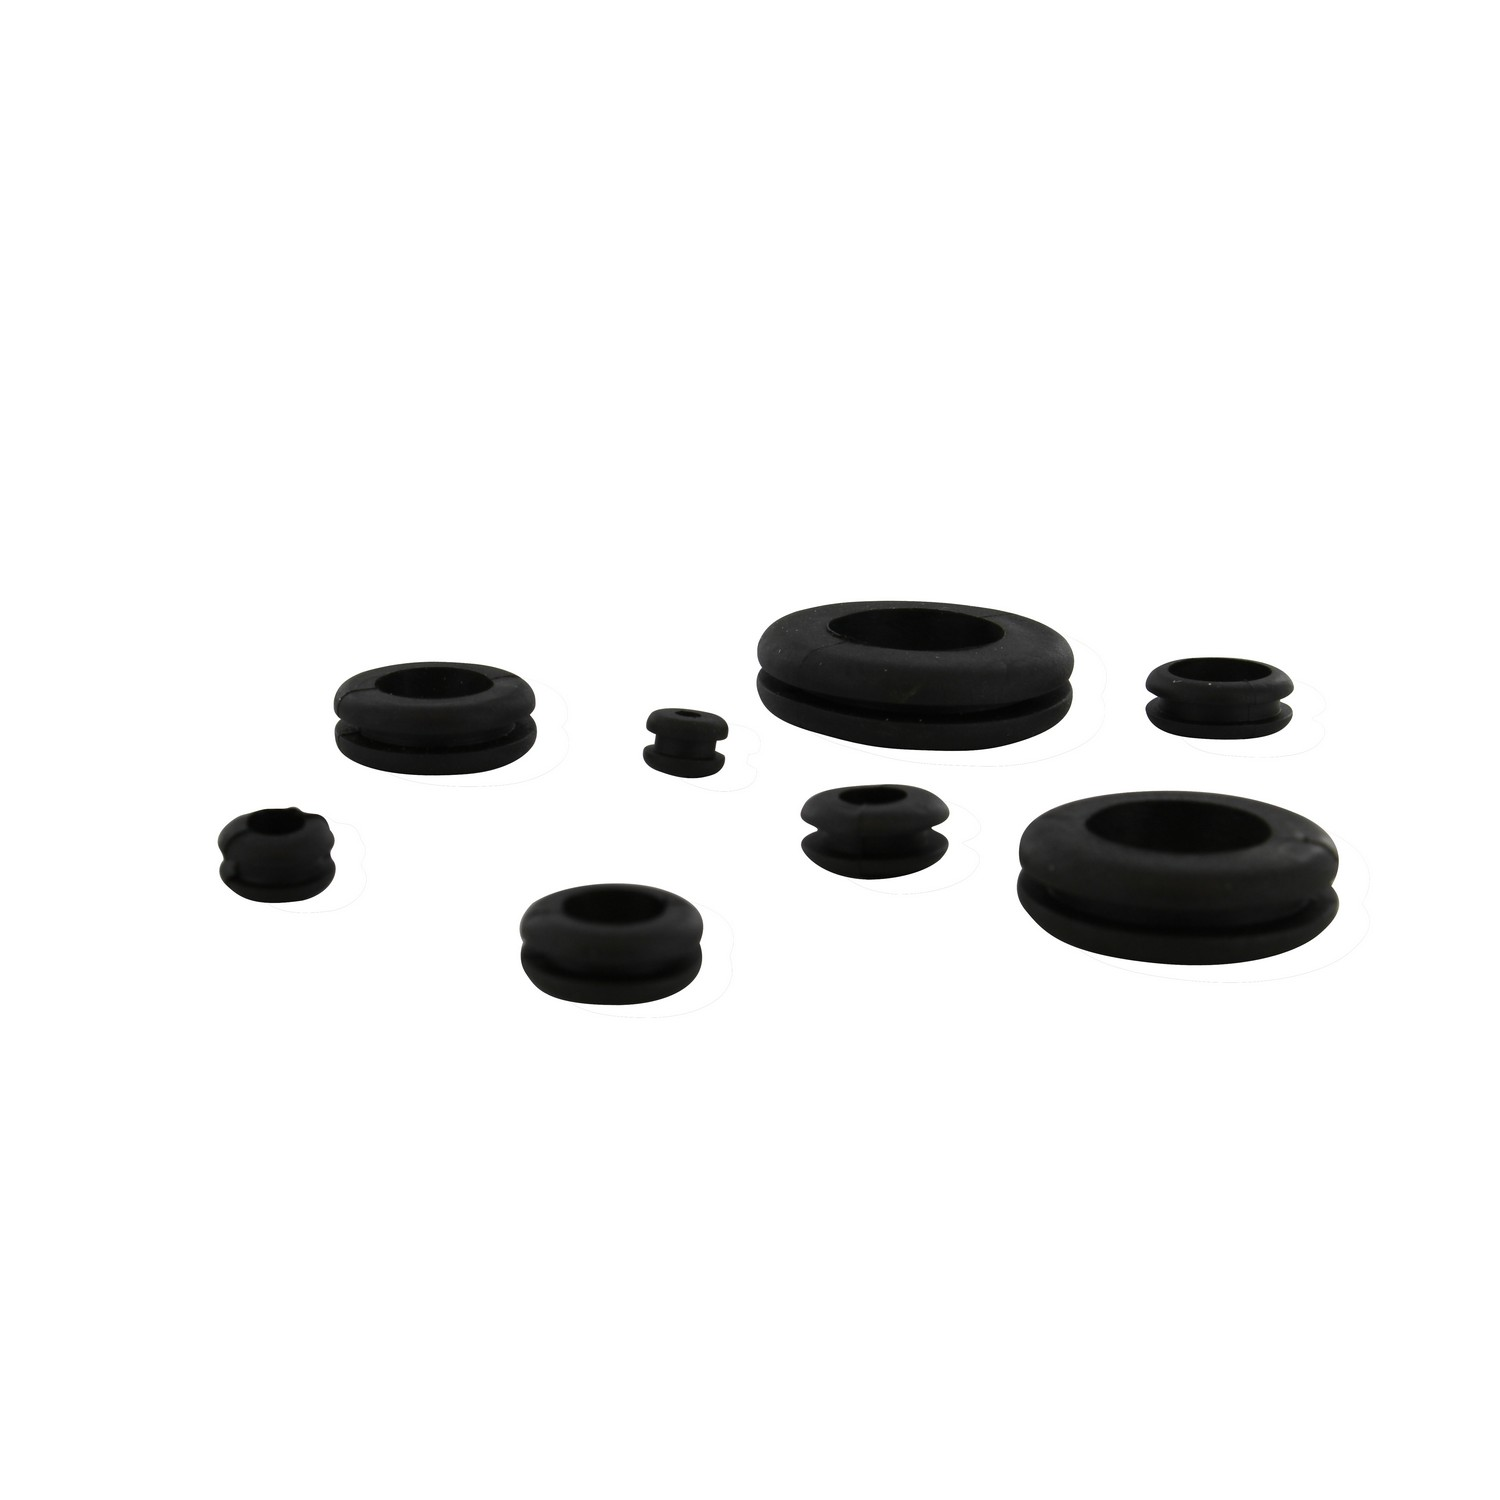 """3//8/"""" /½/"""" 5//16/"""" 5//8/"""" 7//16/"""" /¼/"""" ABN 180 Piece SAE Rubber Grommet Assortment 7//8/"""" and 1 Inch Sizes"""